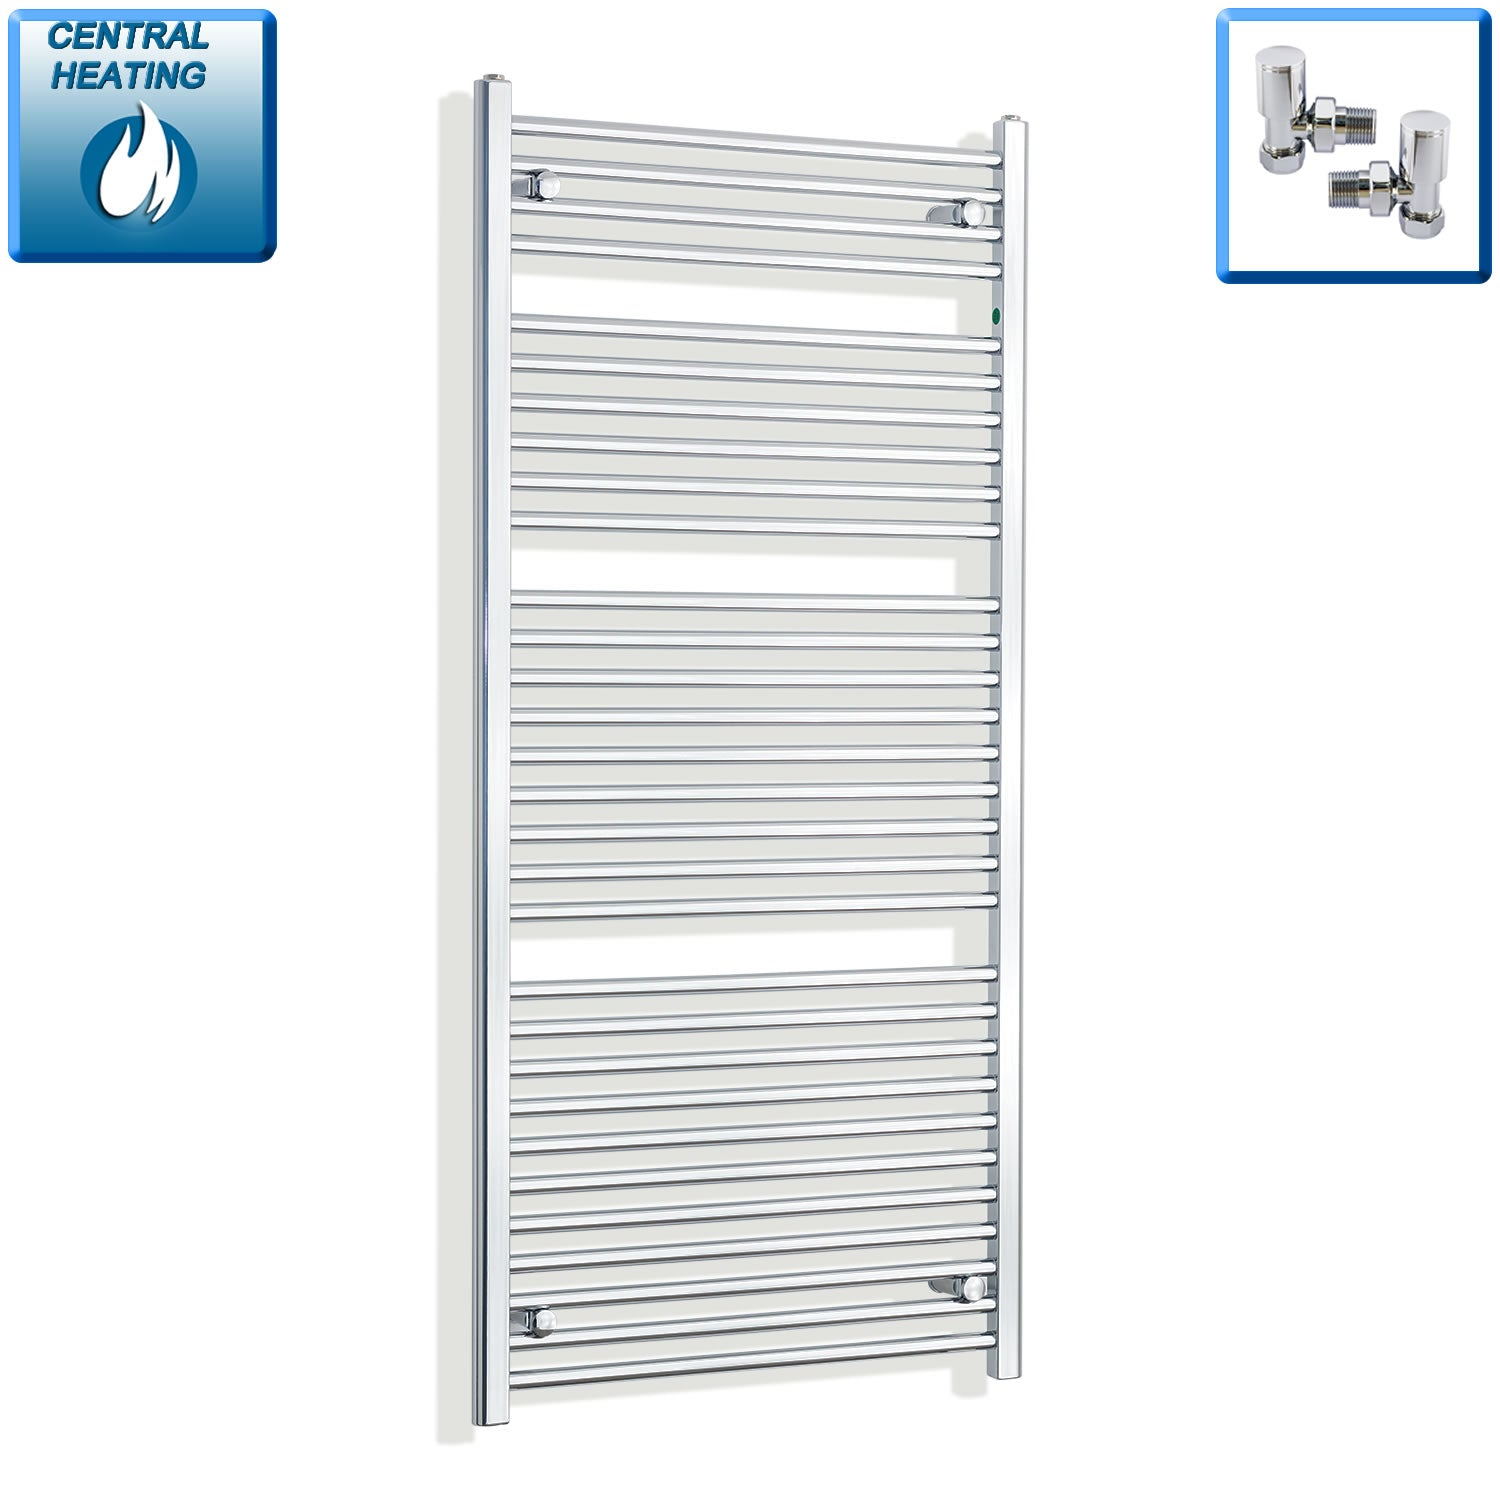 700mm Wide 1500mm High Chrome Towel Rail Radiator With Angled Valve